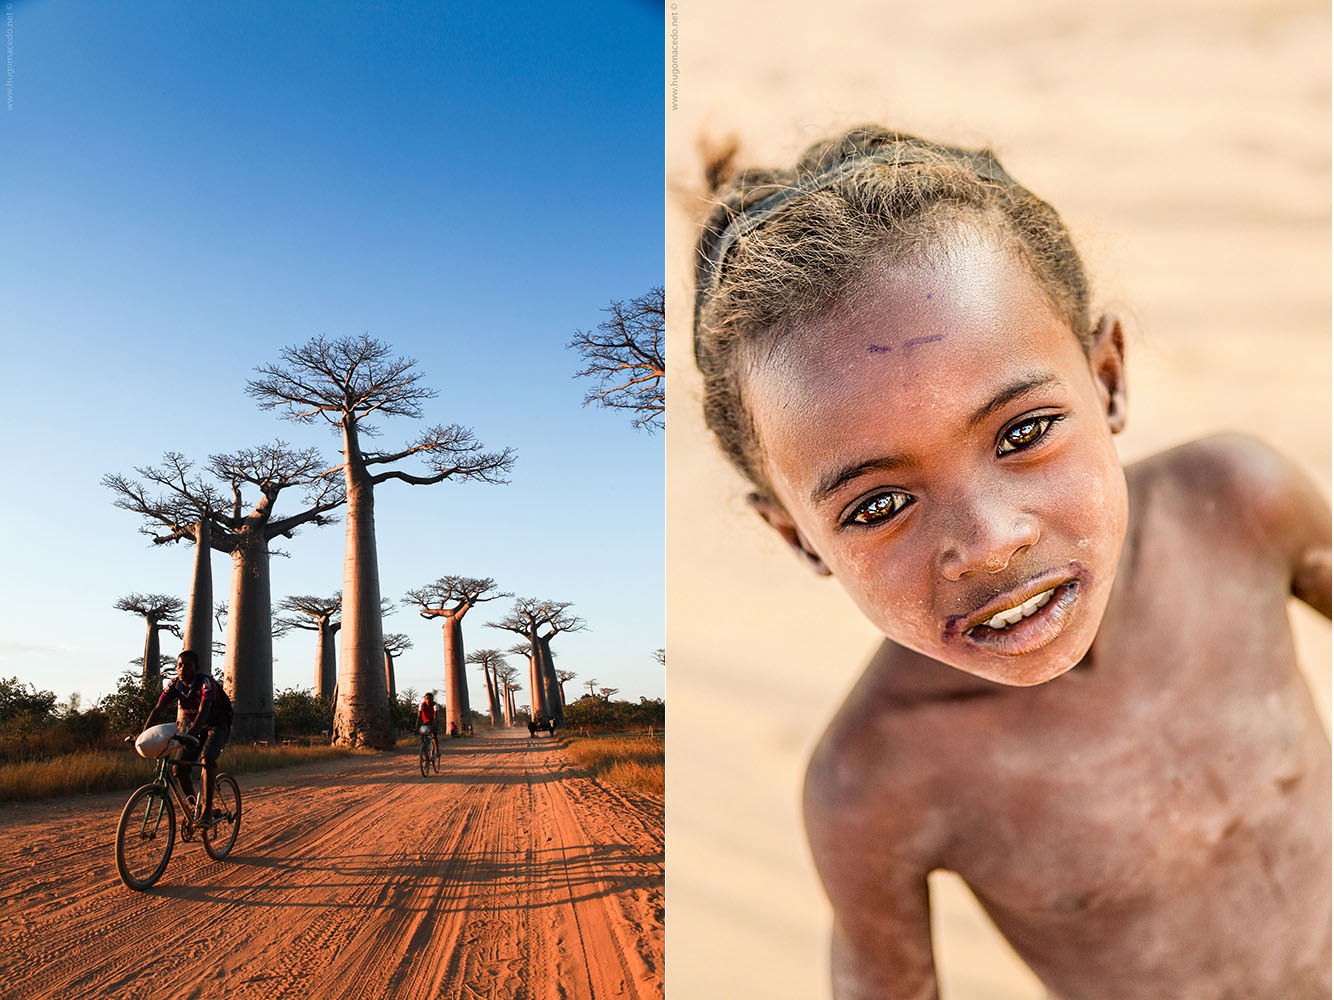 photo essay through the lens by photographer hugo hugo is a friend a travel companion and one of the best photographers i am lucky to know like me traveling is what makes him the happiest and he always